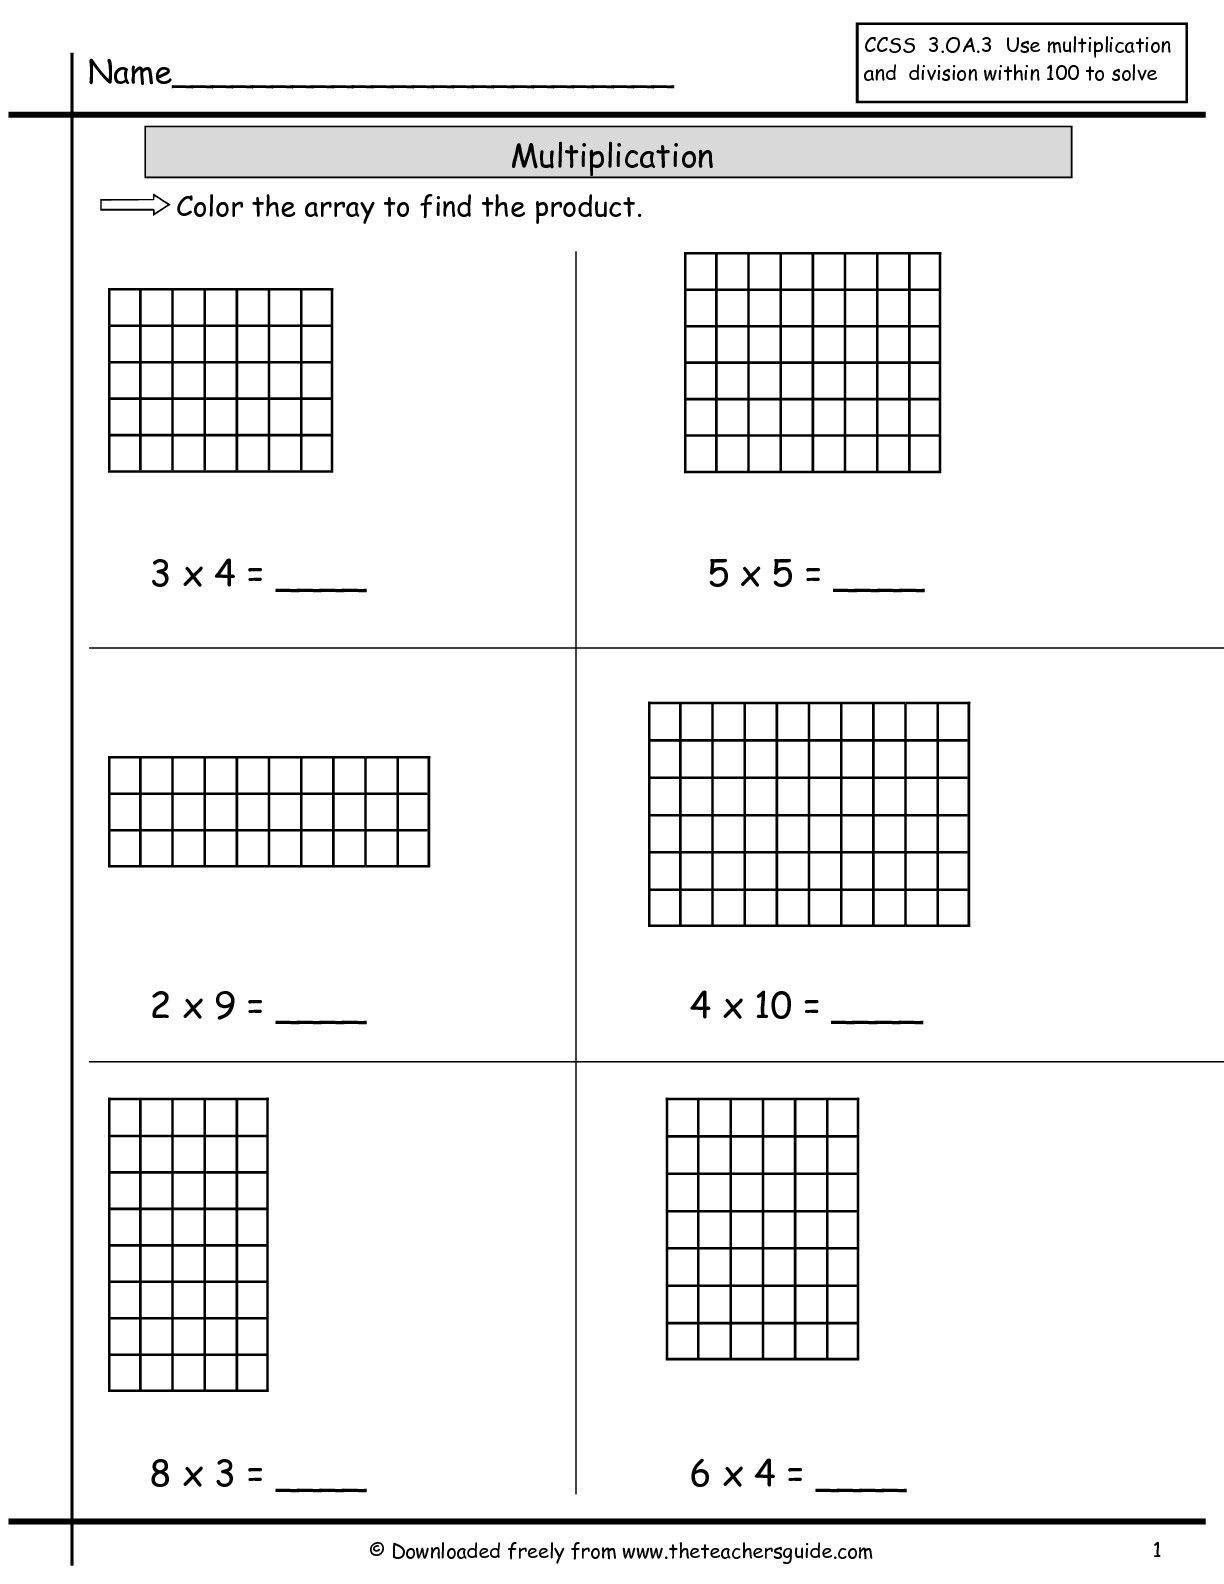 hight resolution of Multplication Arrays Worksheets   Printable Worksheets and Activities for  Teachers